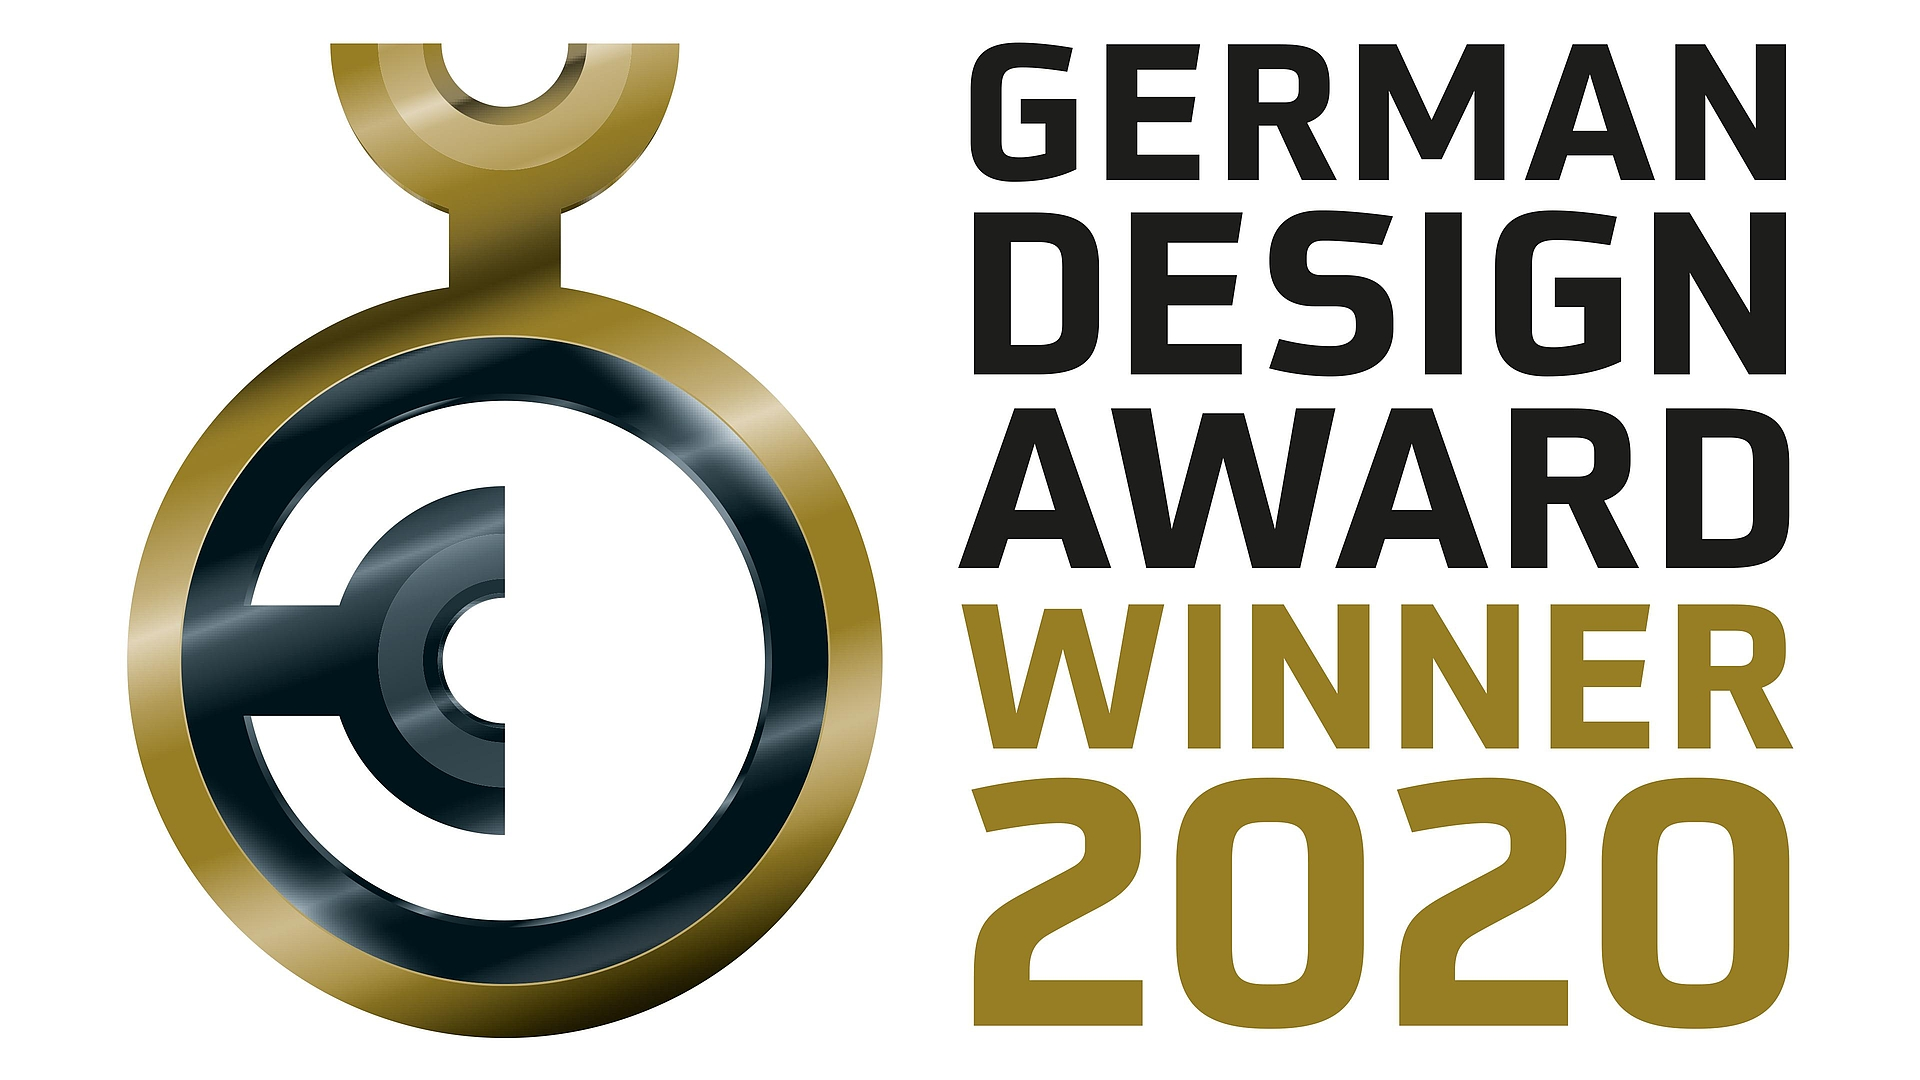 Award_German_Design_Award_Winner_2020_thumb.jpg